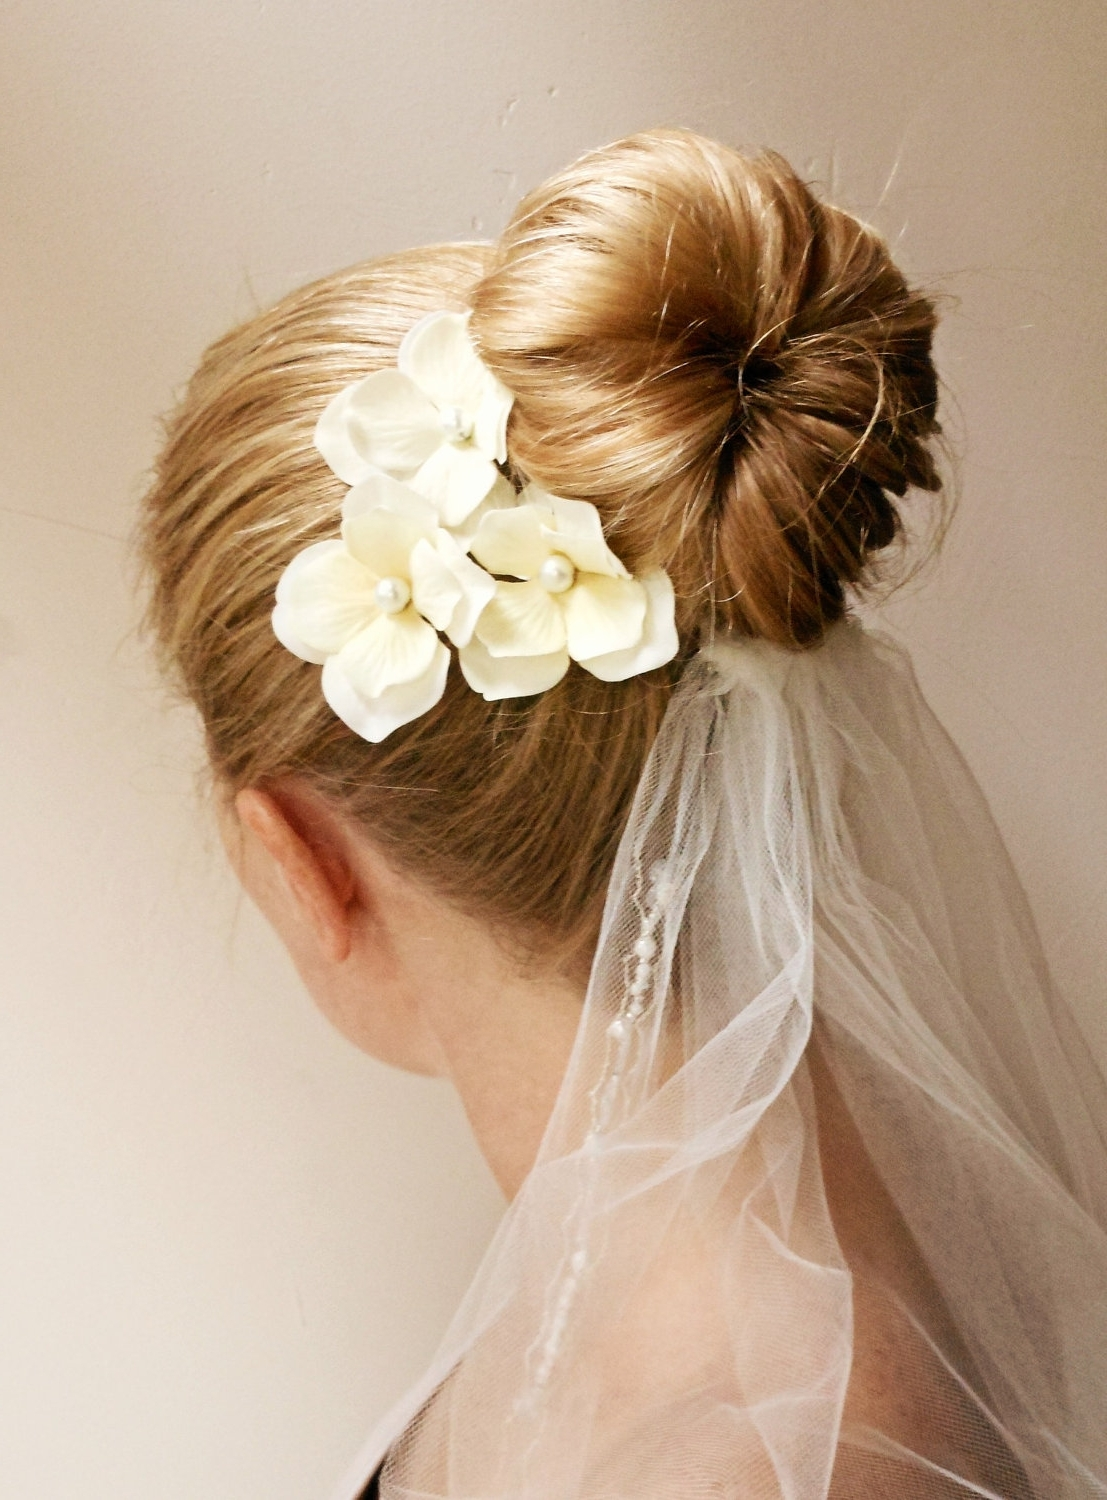 Wedding Hairstyles Ideas: Messy Low Updo Hairstyles For Long Hair Inside Updo Hairstyles With Flowers (View 13 of 15)